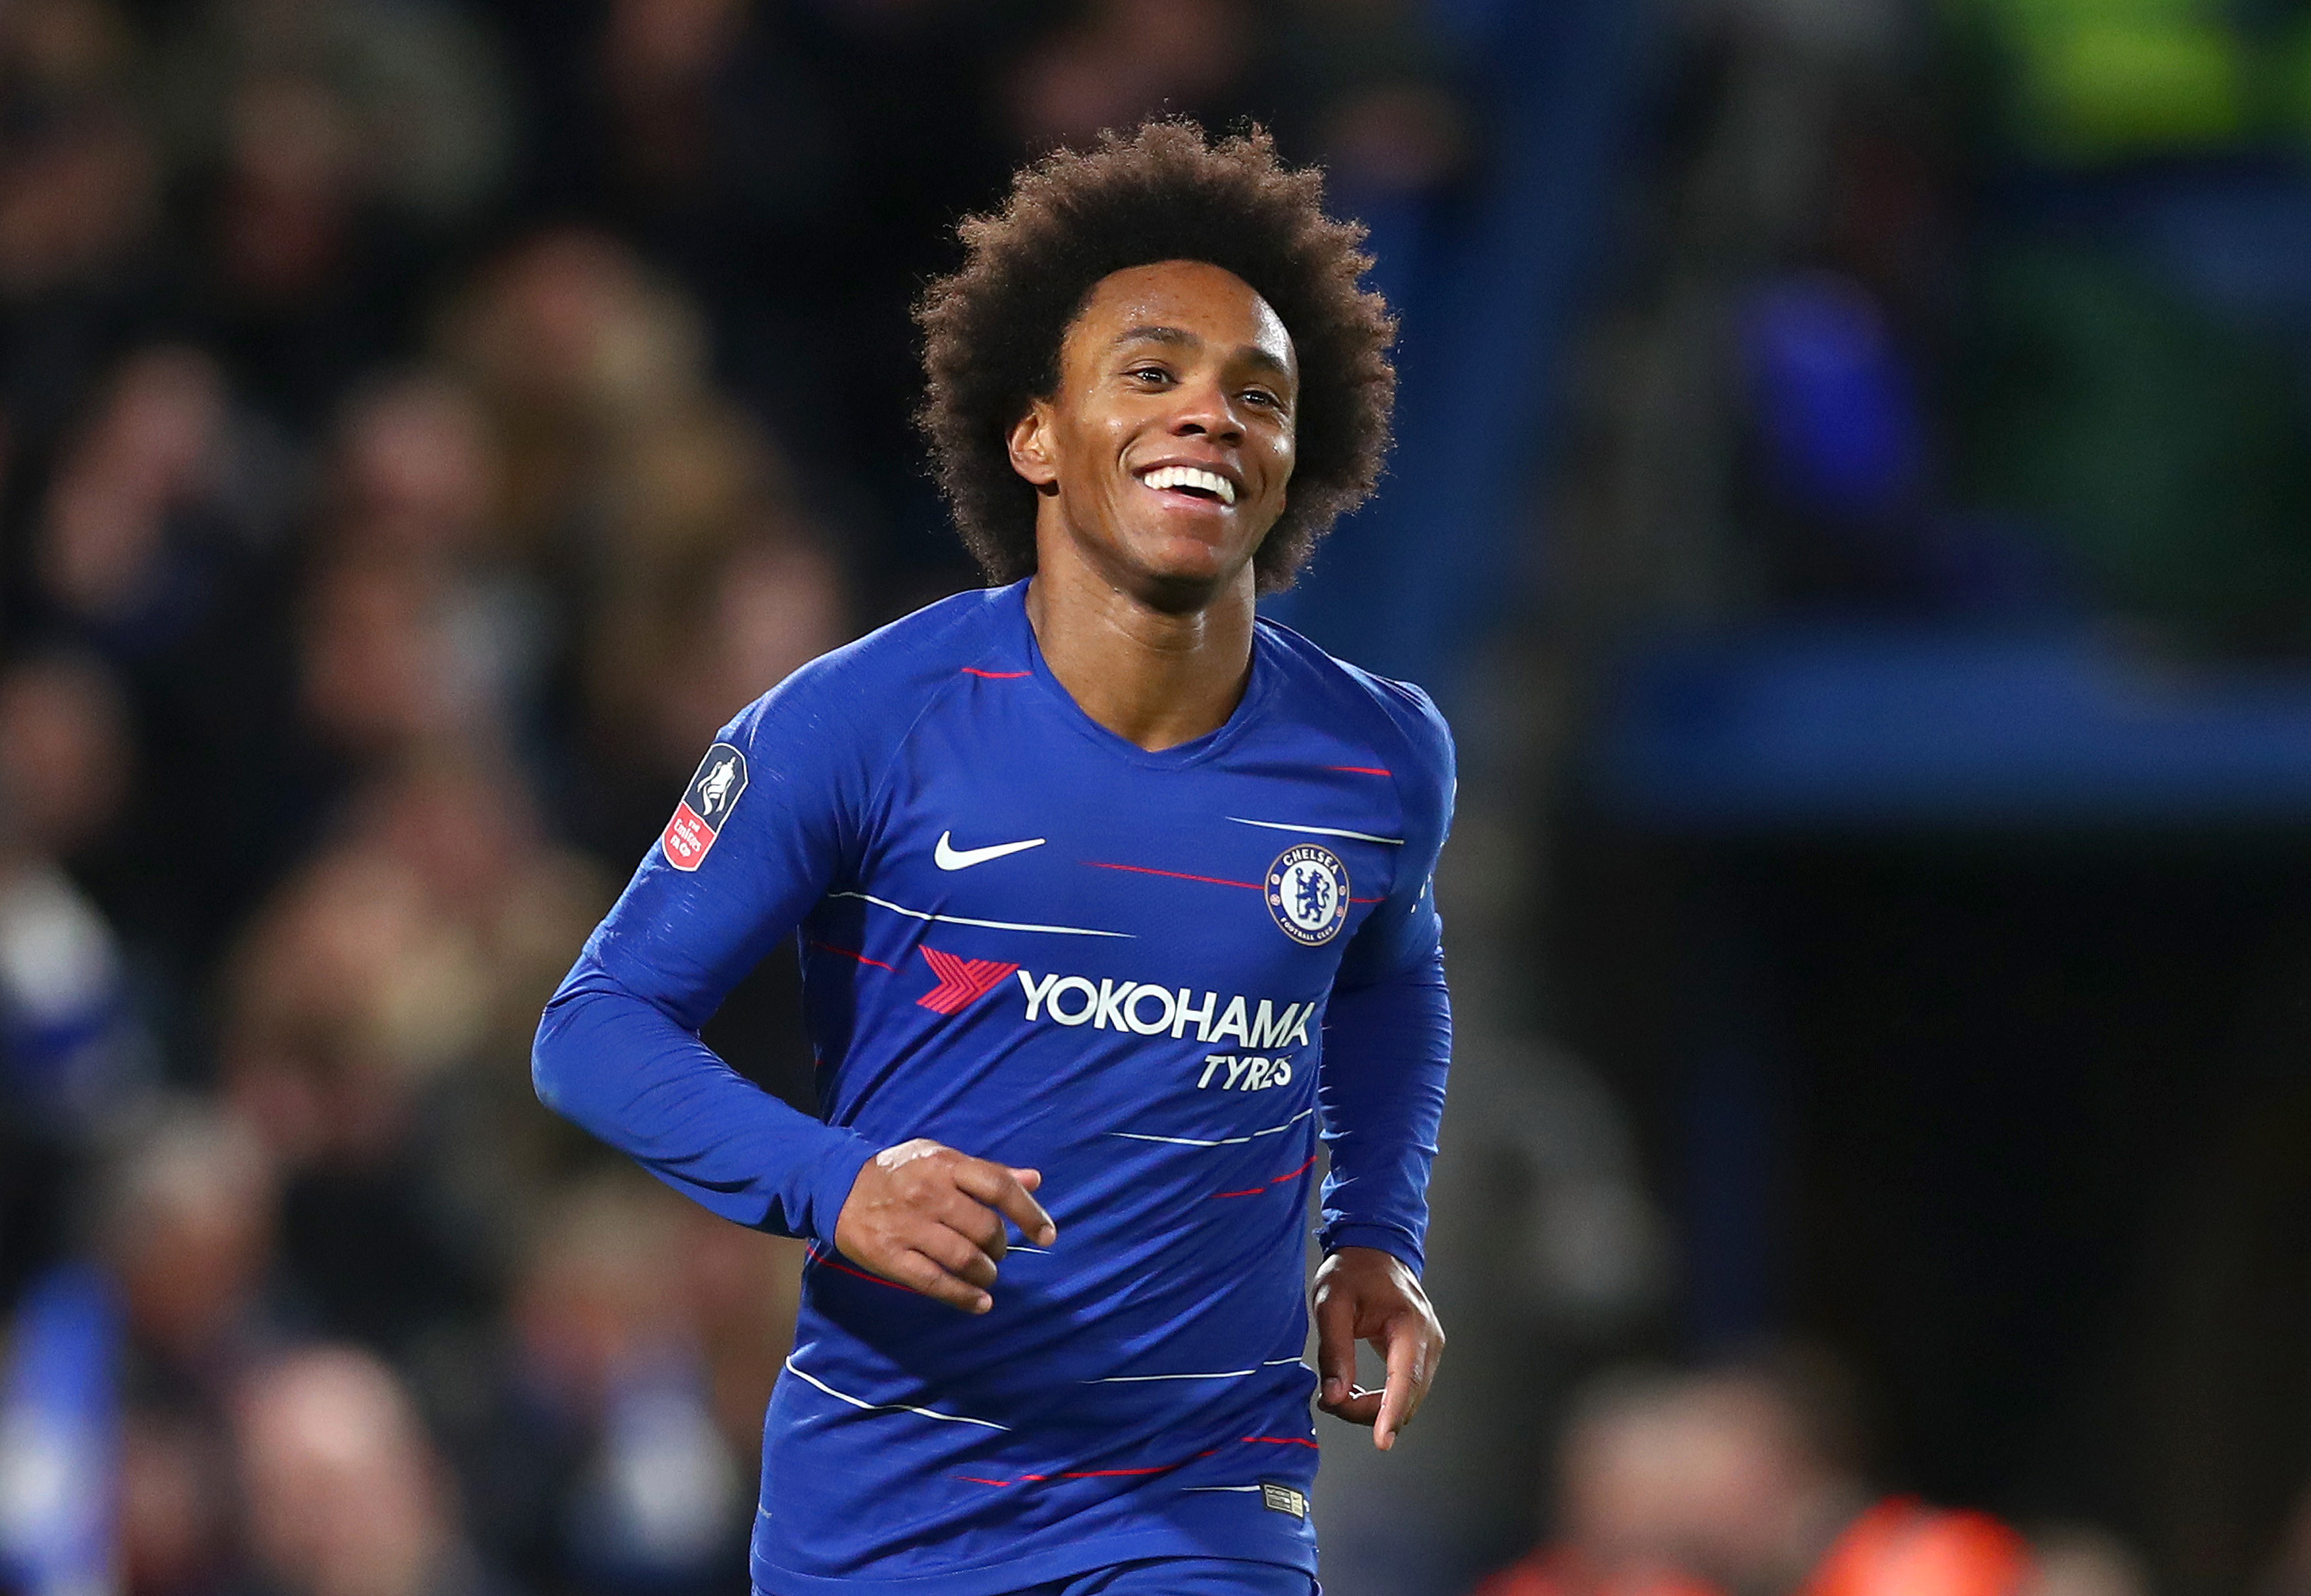 Barcelona have renew interest in signing Willian from Chelsea, Mundo Deportivo